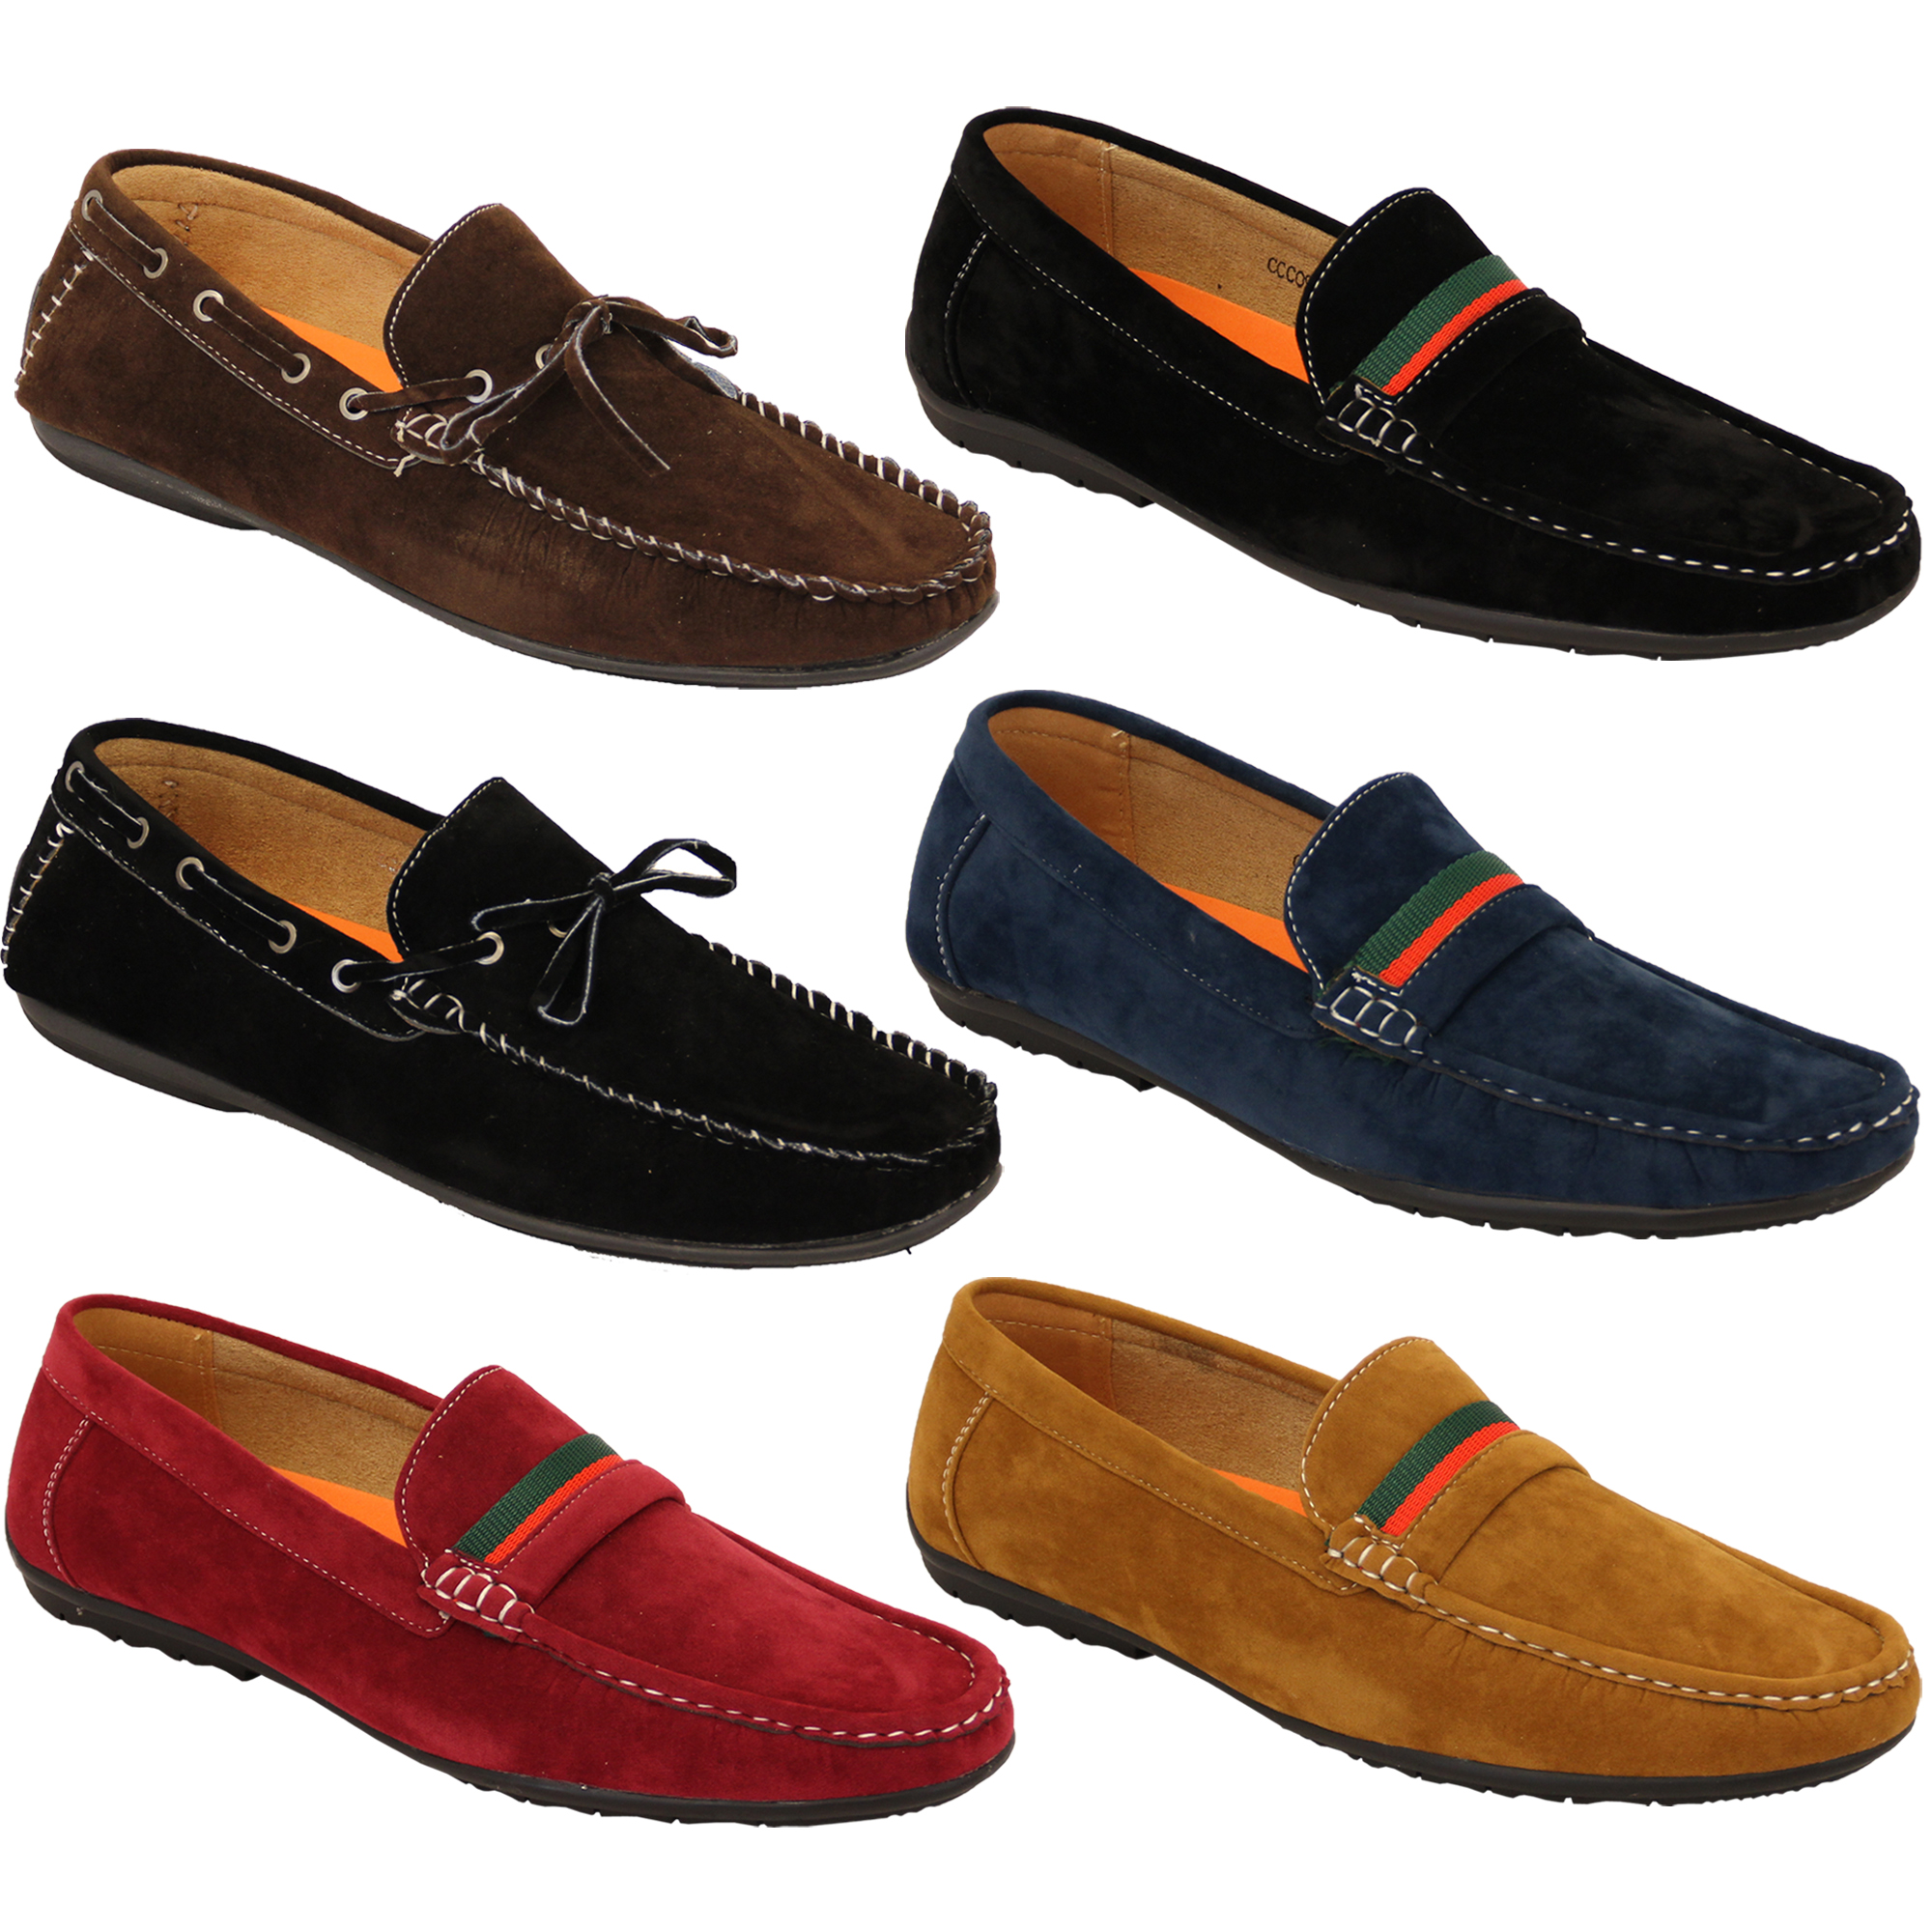 Mens Moccasins Suede Look Driving Loafers Slip On Boat Shoes Ribbon Tassle New Ebay